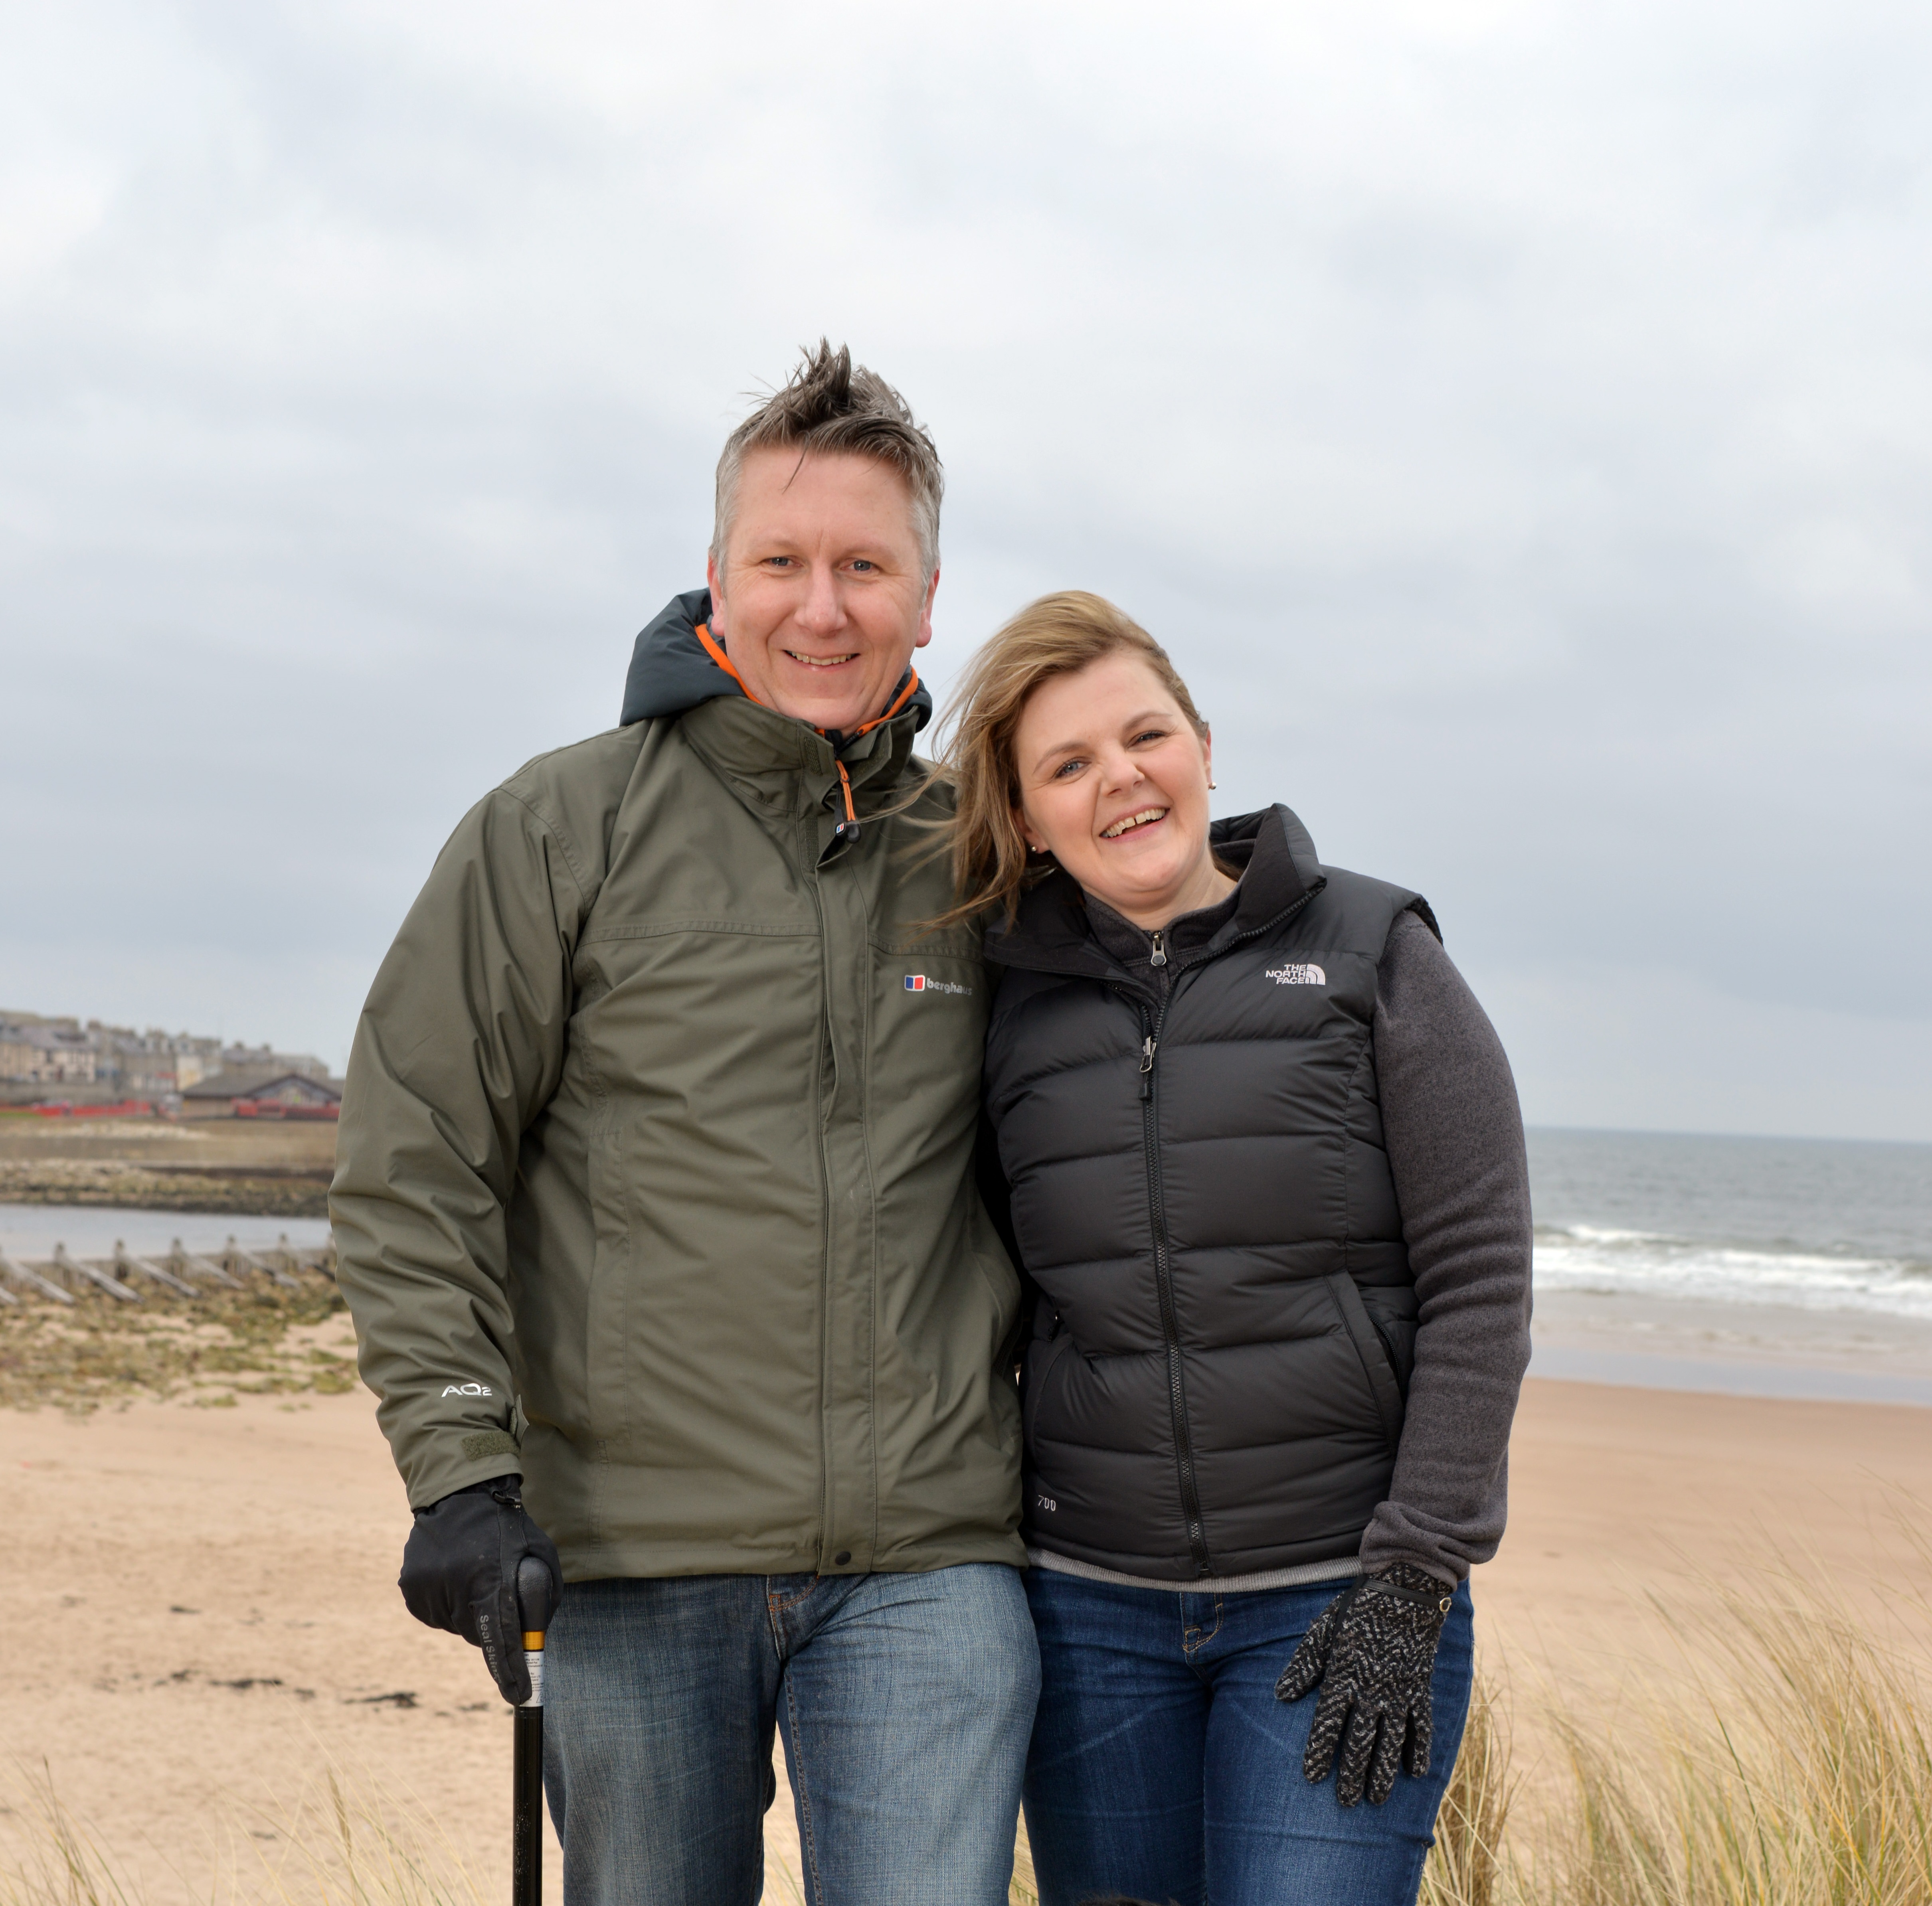 Mick McConnell with his wife Lorna.